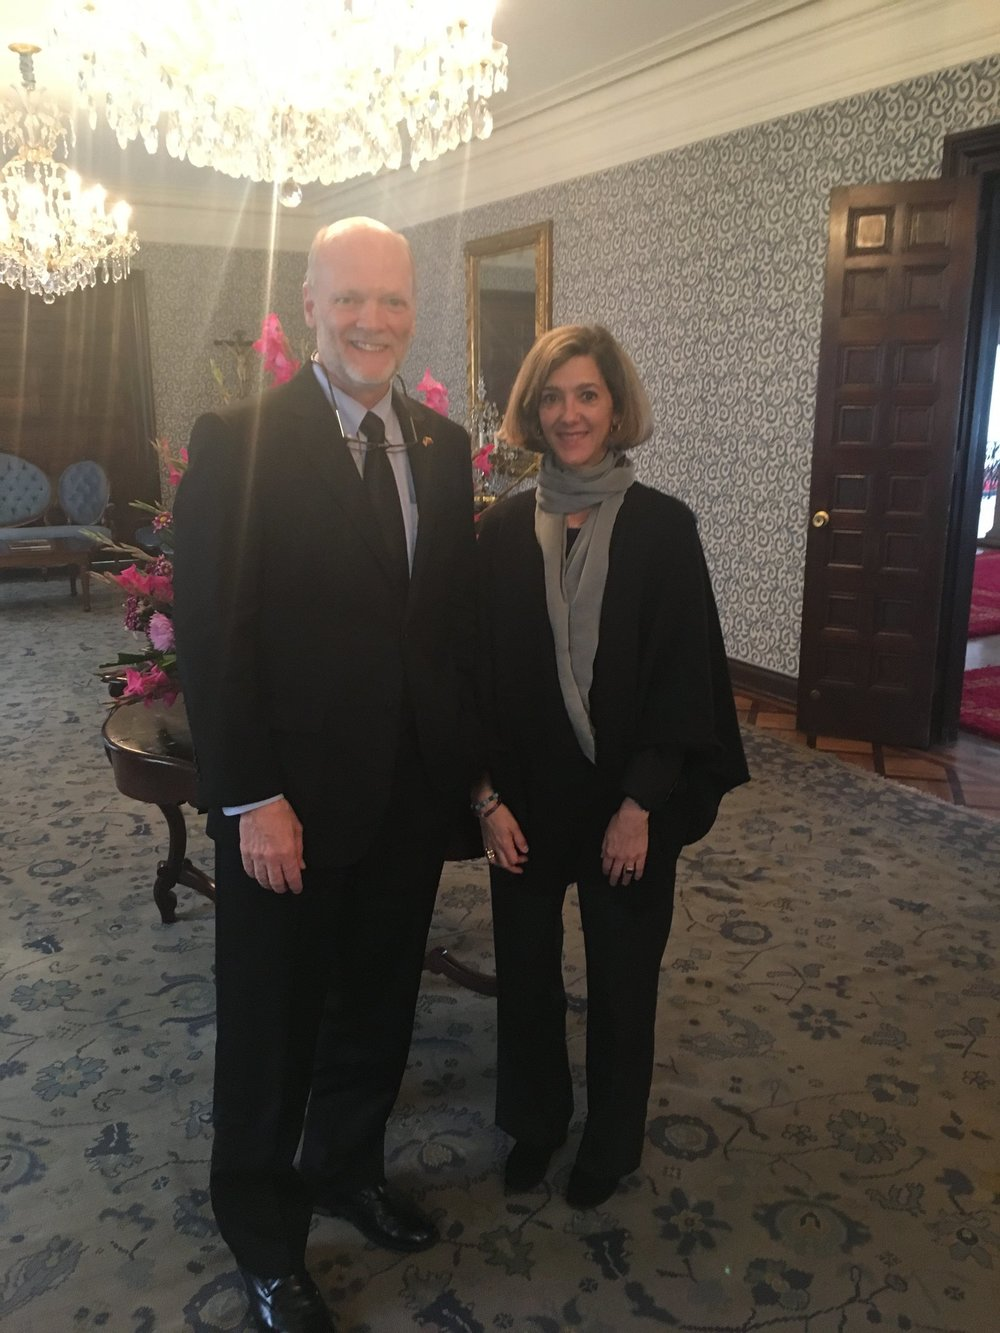 5.11.18 - Ken Isaacs met with Colombia's Vice Foreign Minister, Patti London, to discuss migration challenges and solutions in Colombia.